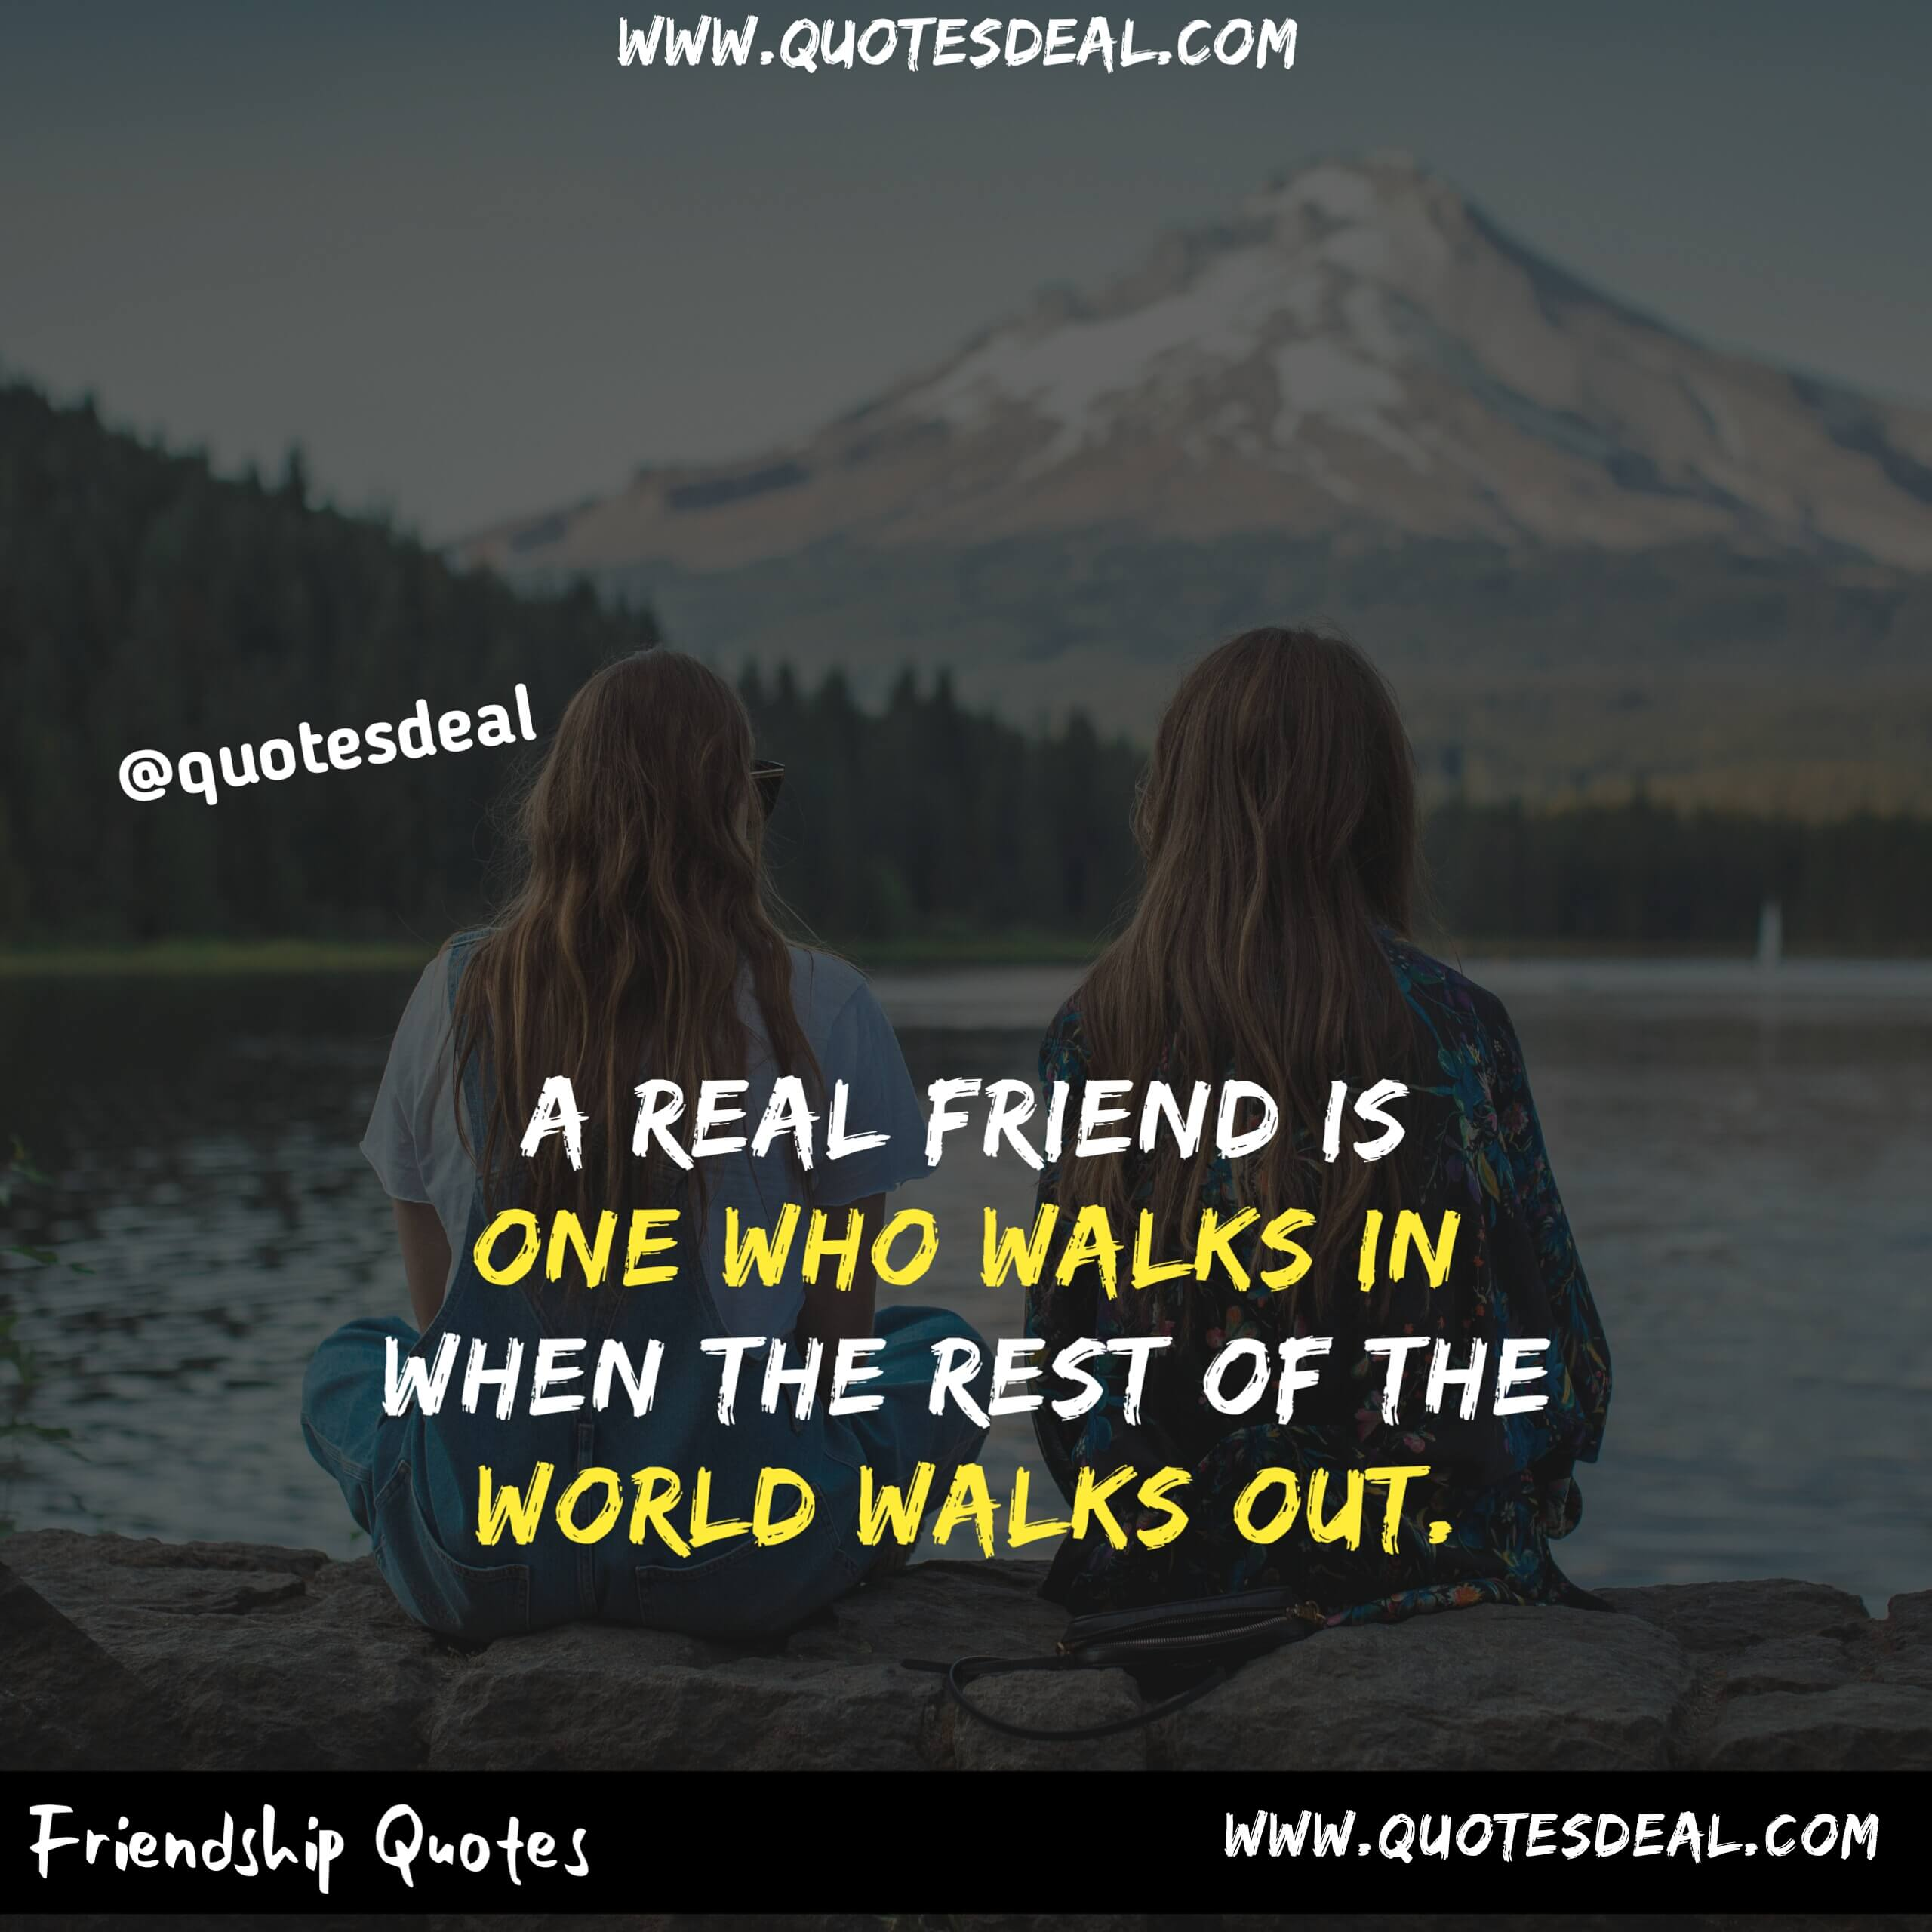 real friend is one